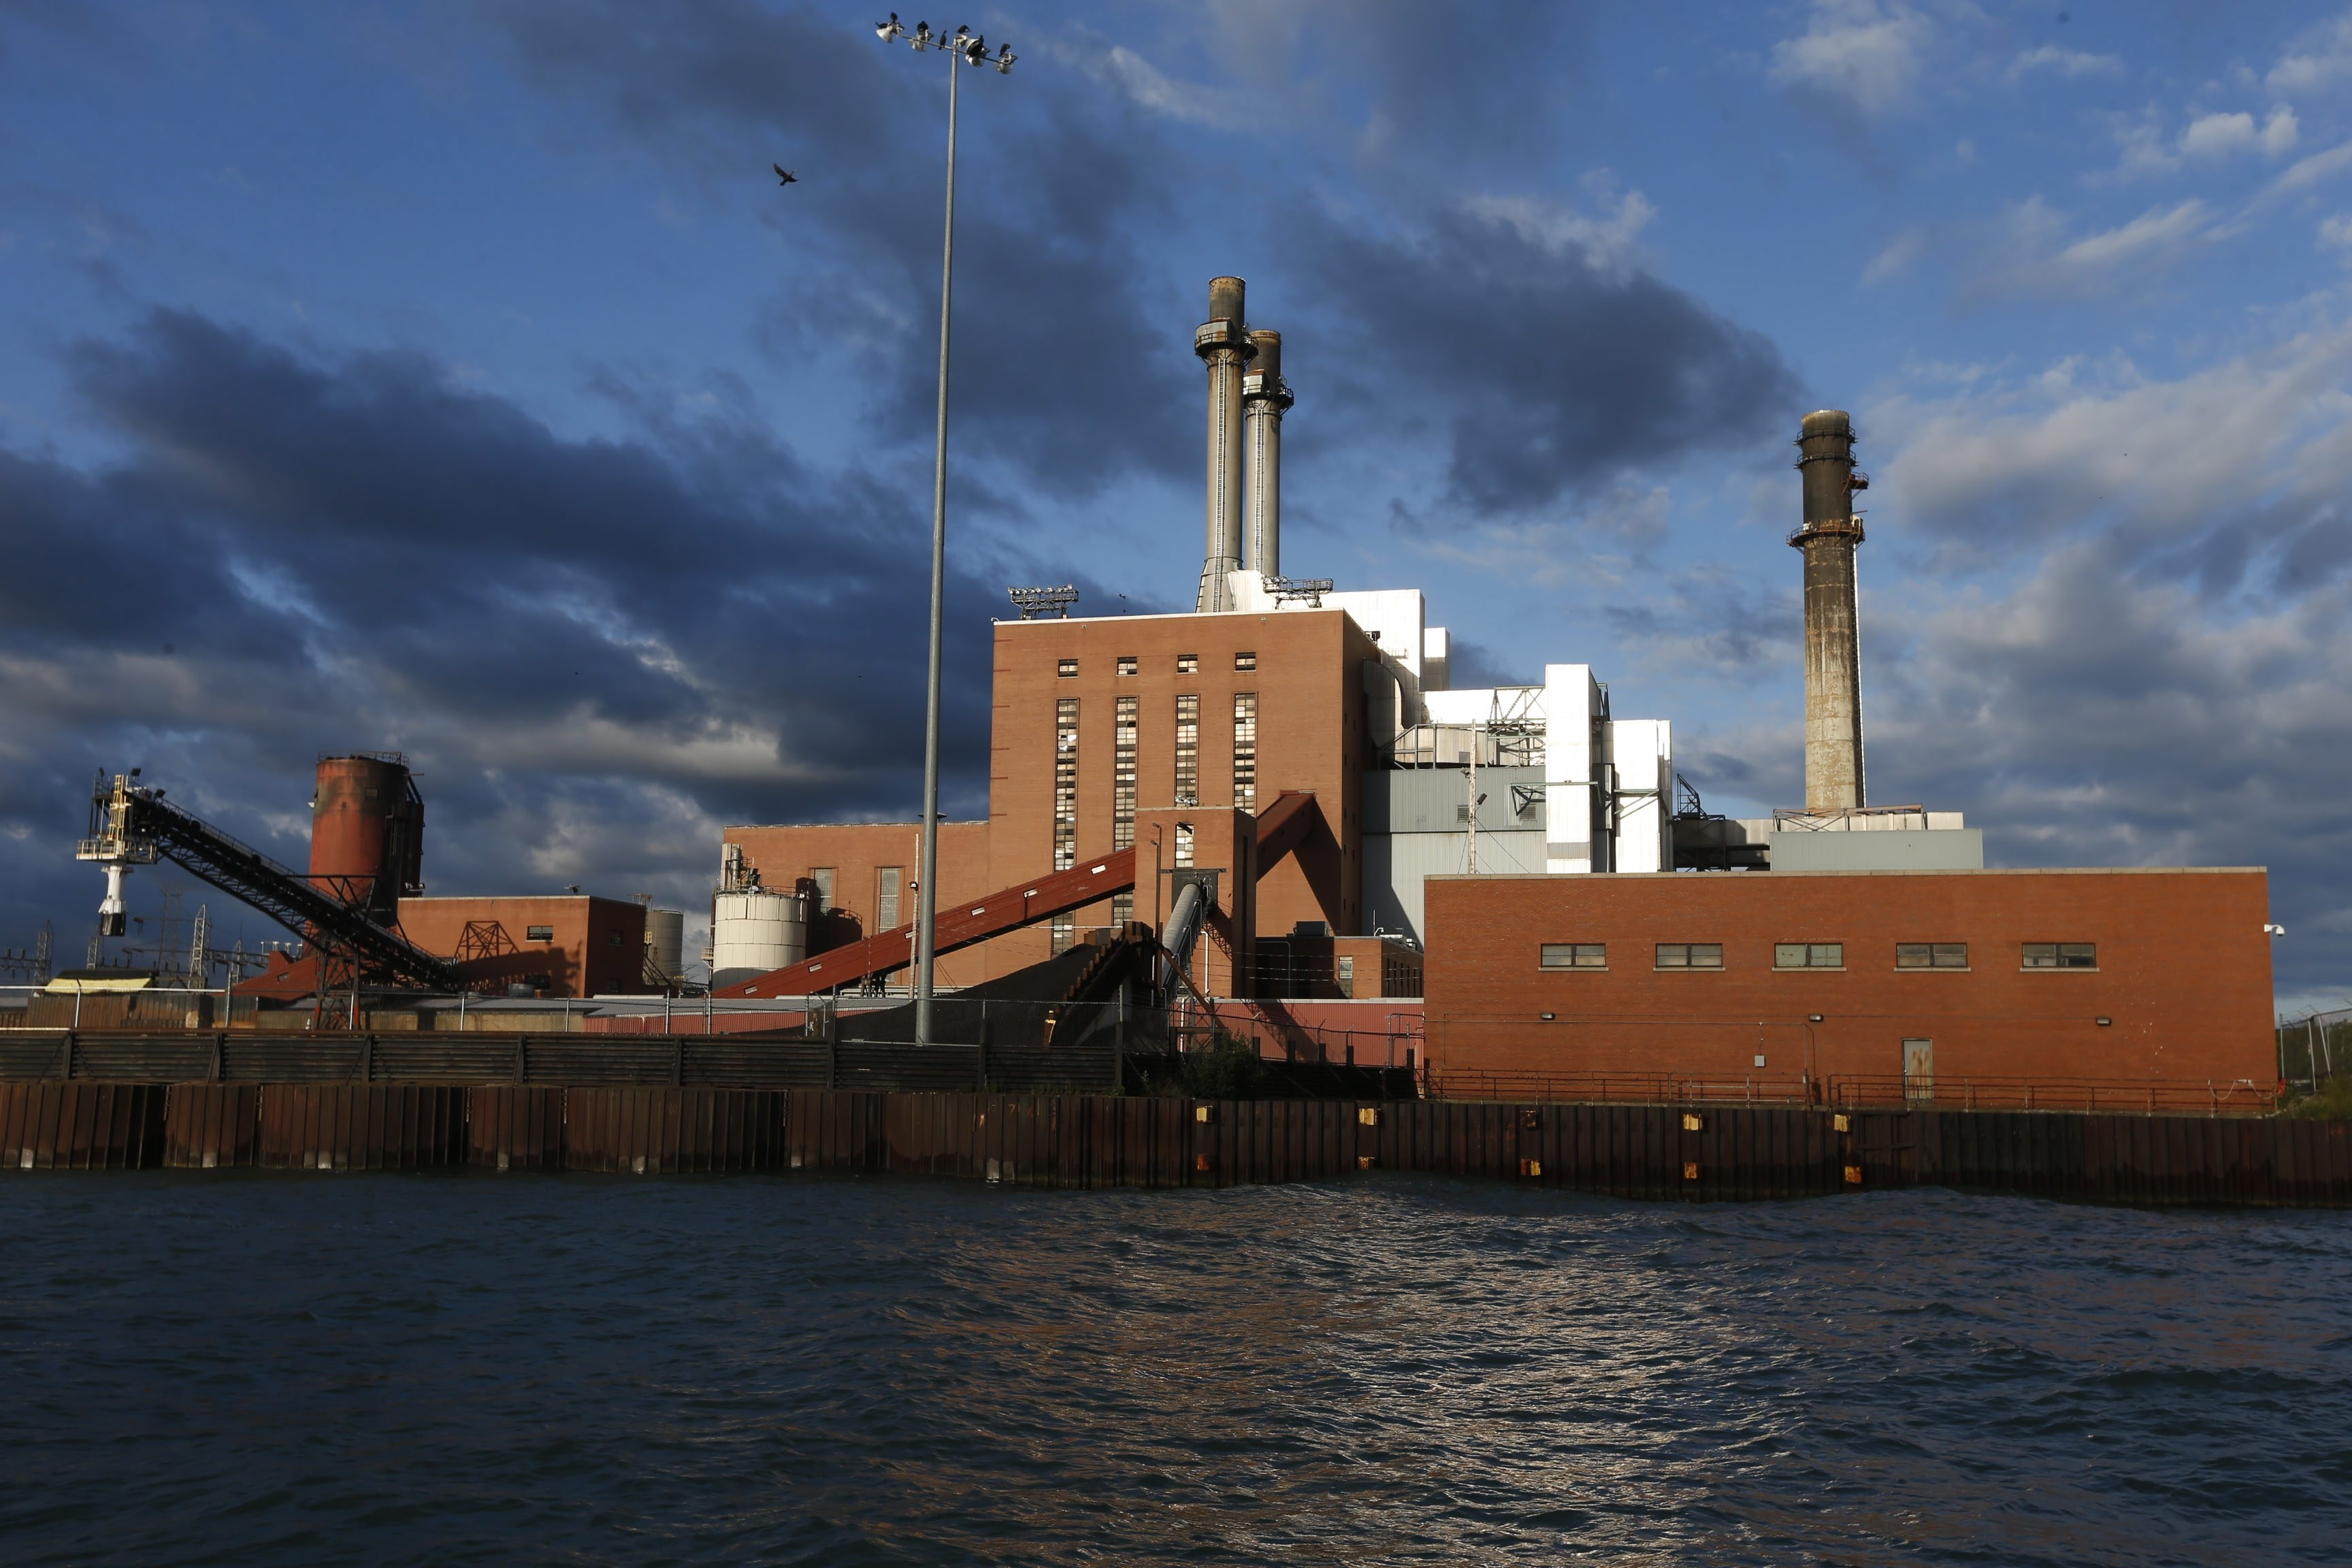 A view of the Dunkirk coal-powered generating station, where writer Sean Kirst's father worked. (Robert Kirkham/Buffalo News)